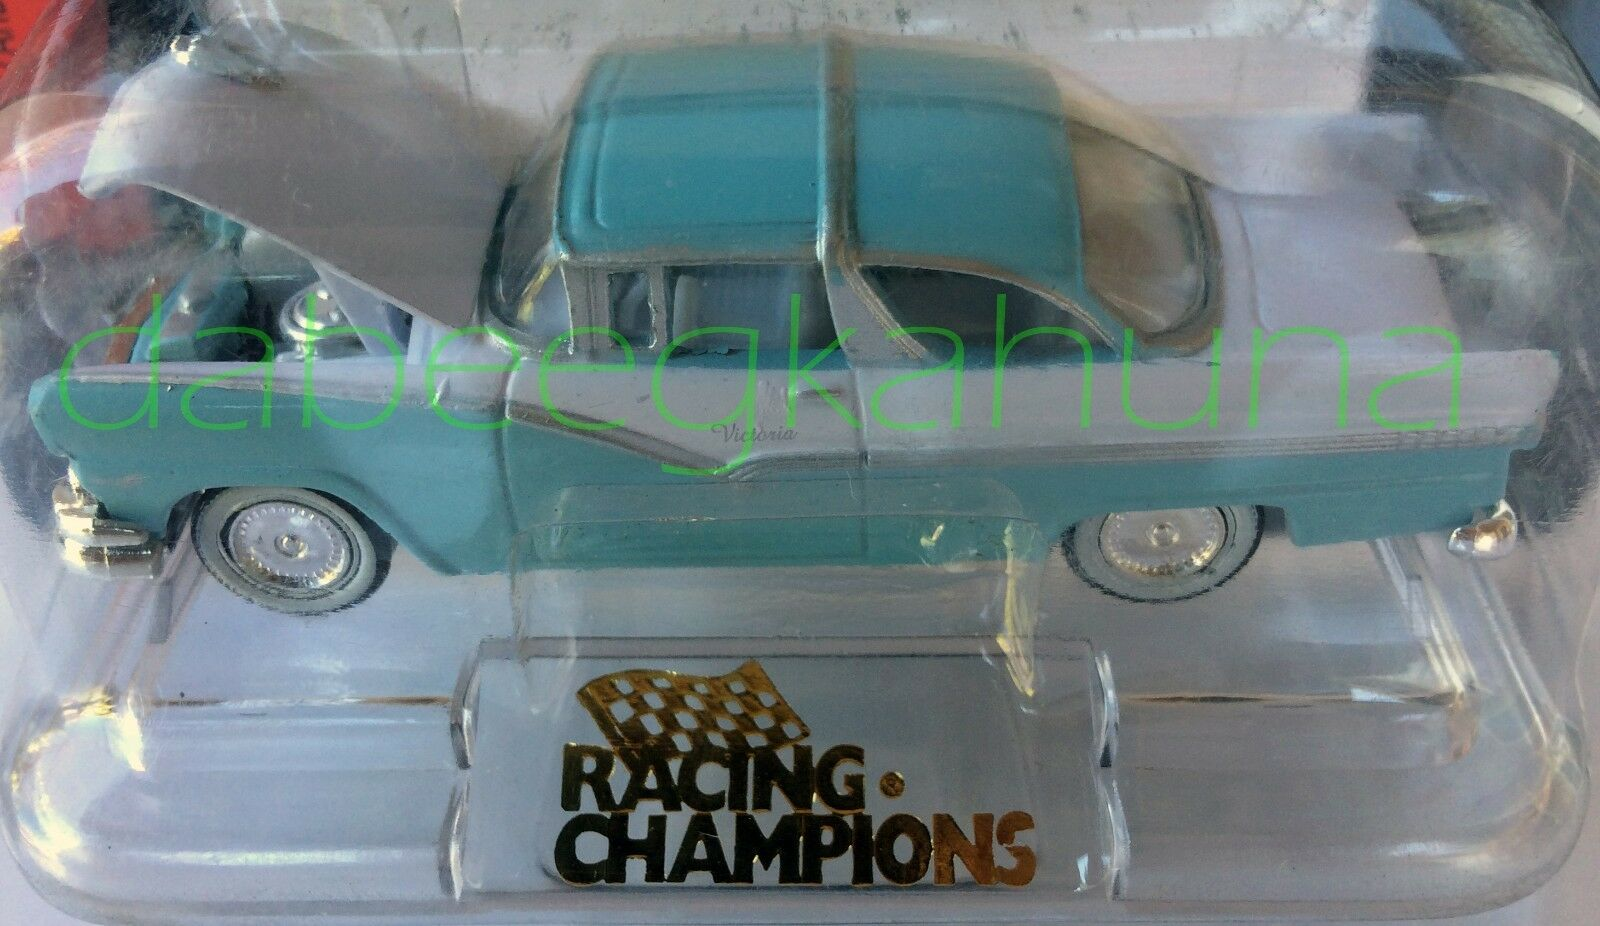 Racing Champions Mint-1956 Ford Victoria Fairlane-Rubber Tires-Die-Cast-Scl-1 60 60 60 24fe57